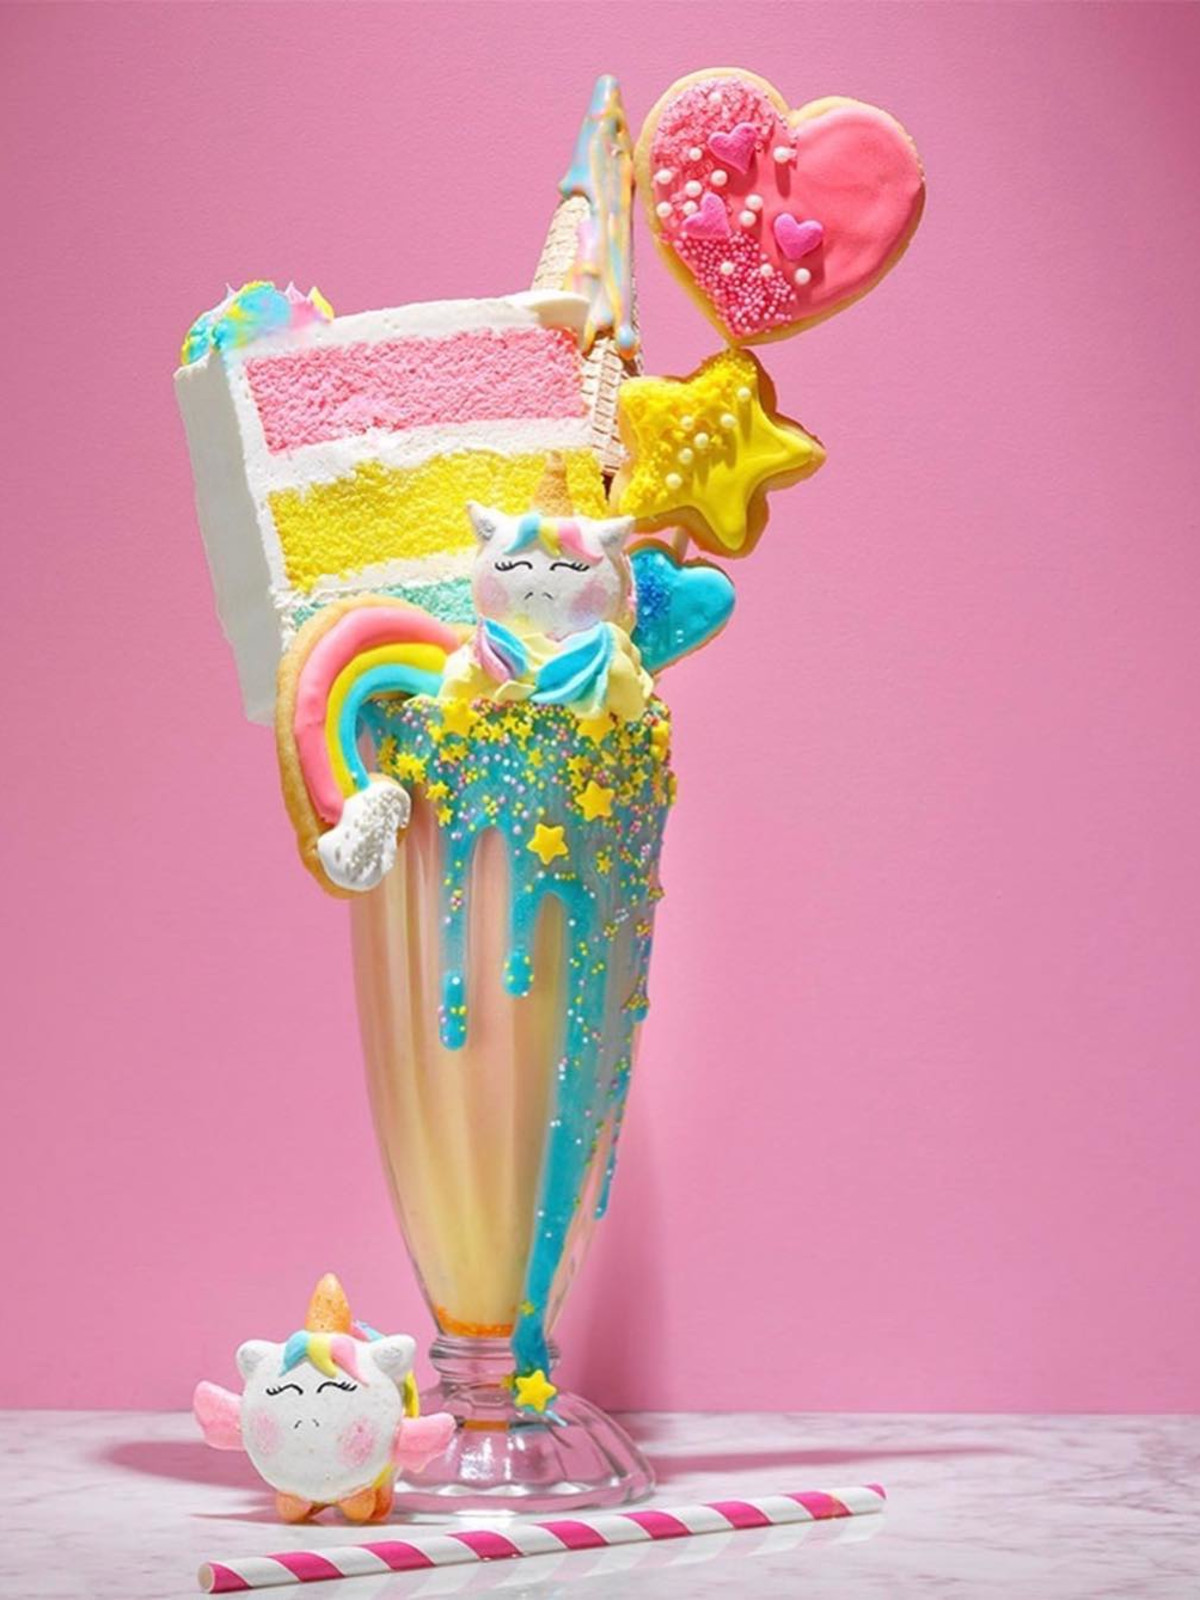 Magical new dessert shop showers Montrose with unicorns and